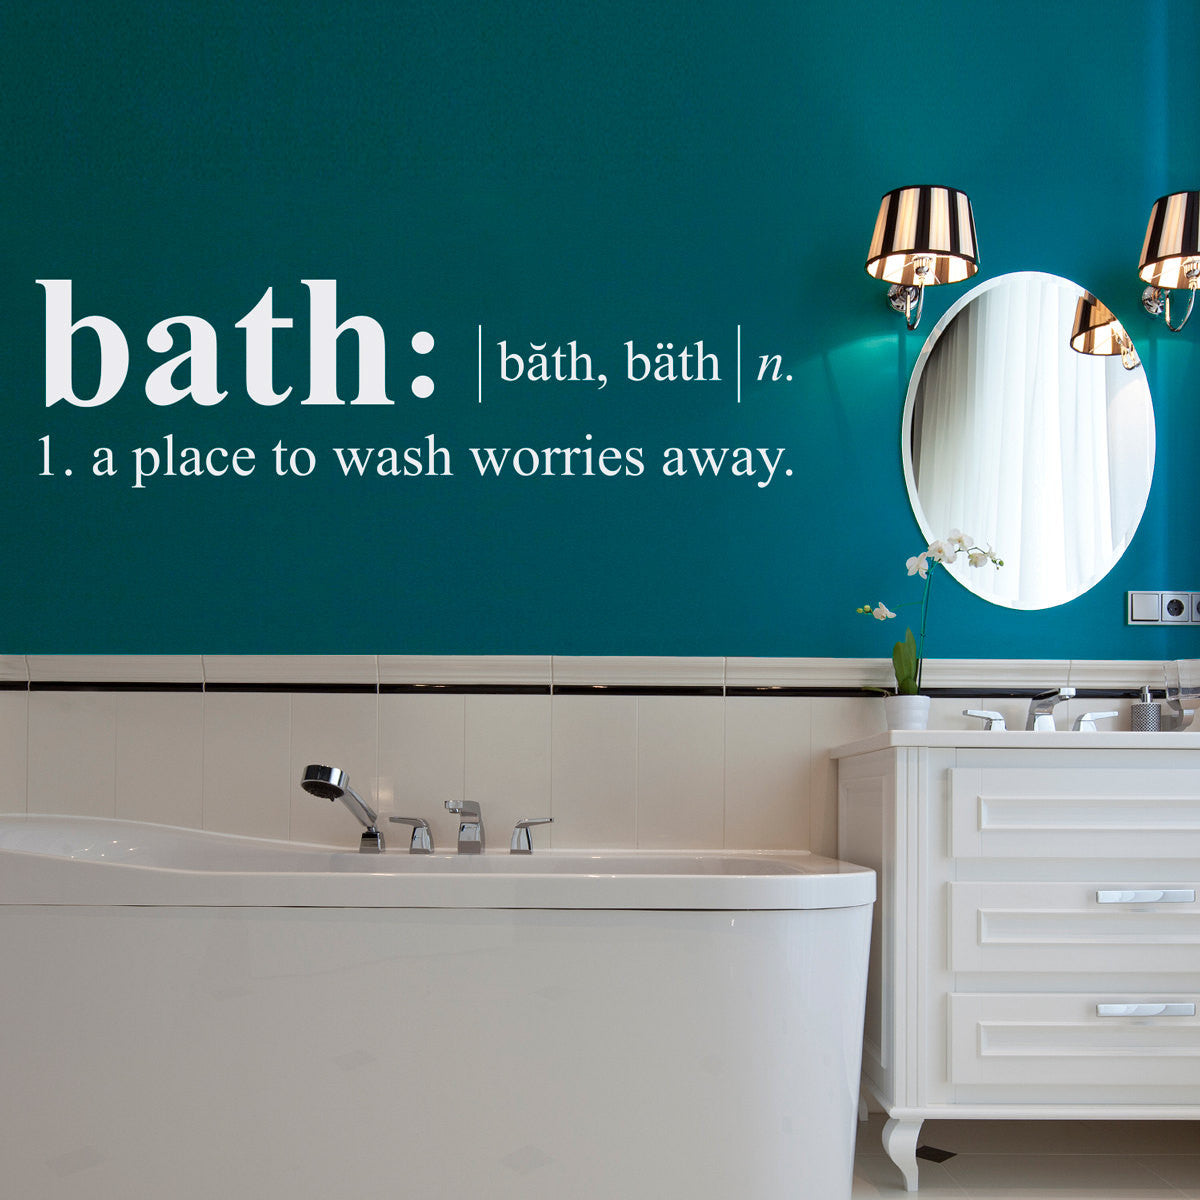 bath dictionary definition wall decal large